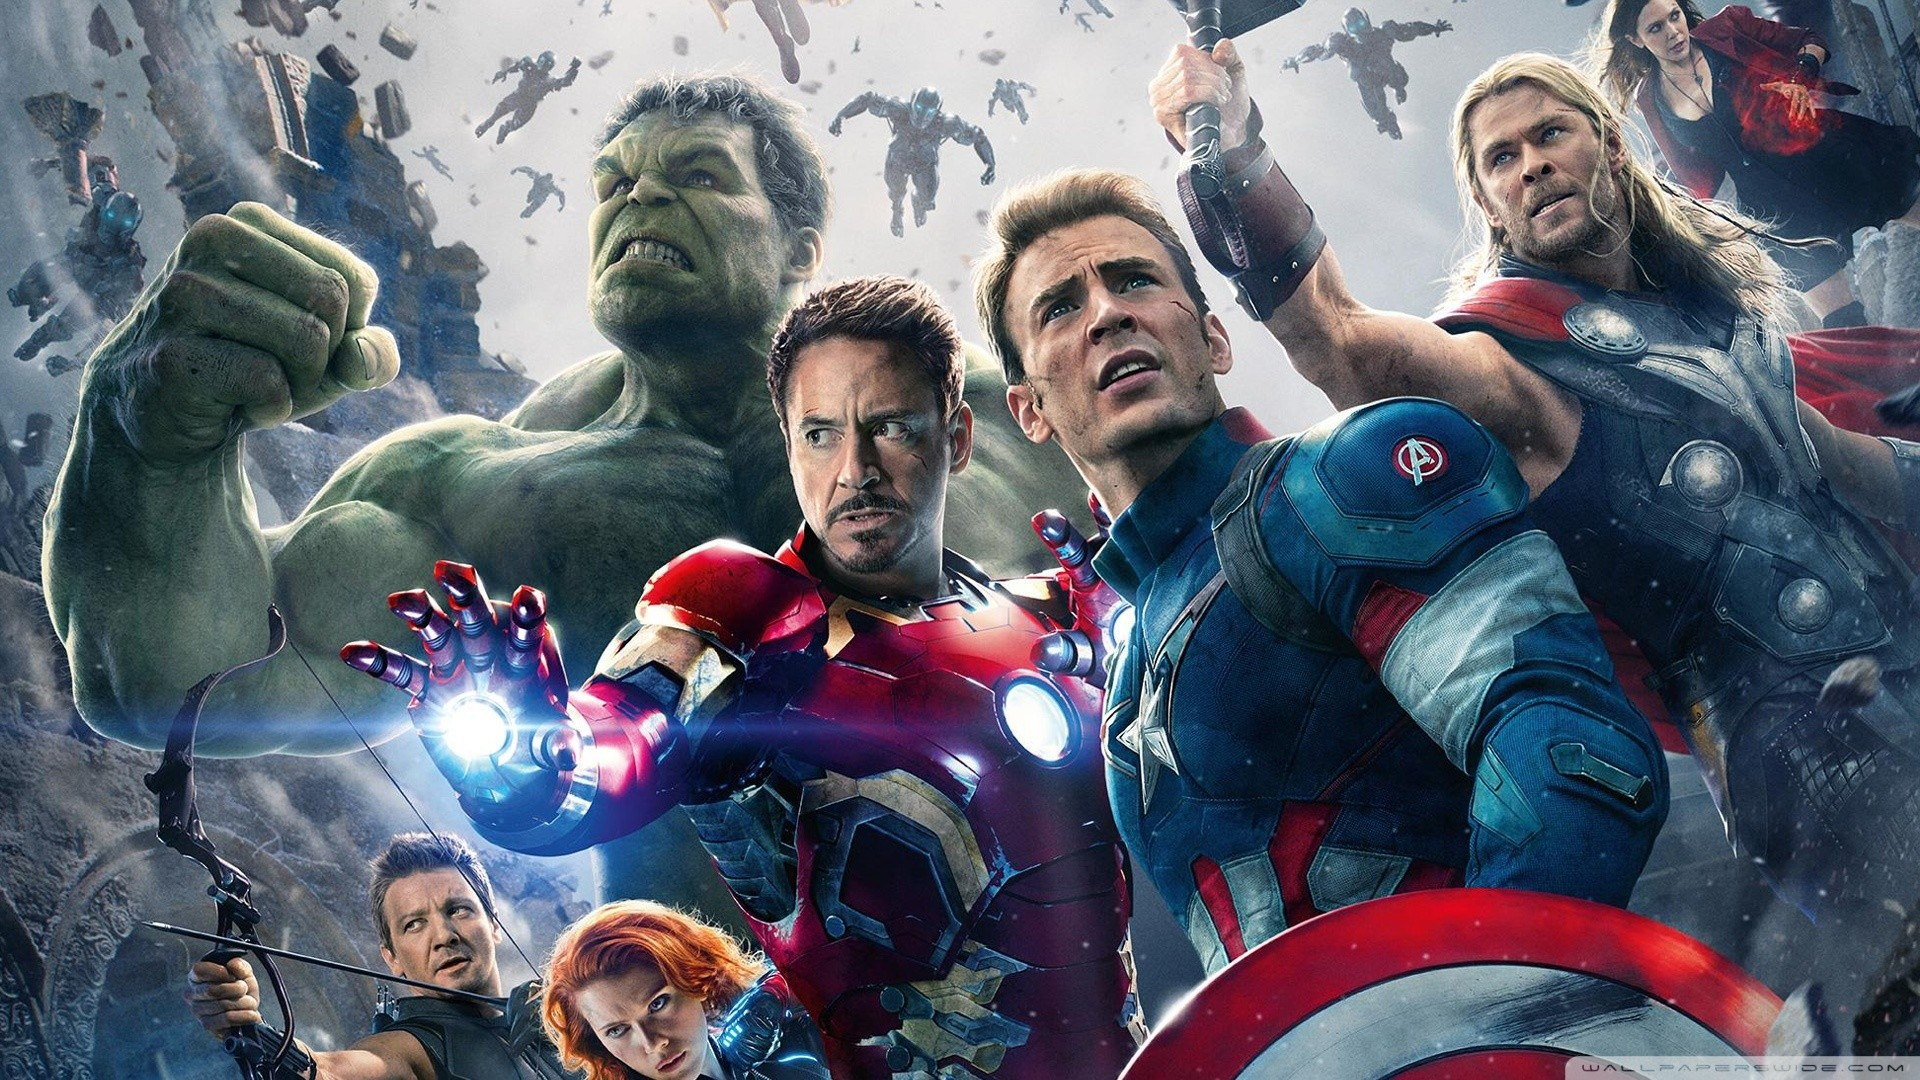 Marvels Avengers Age of Ultron HD Wide Wallpaper for Widescreen